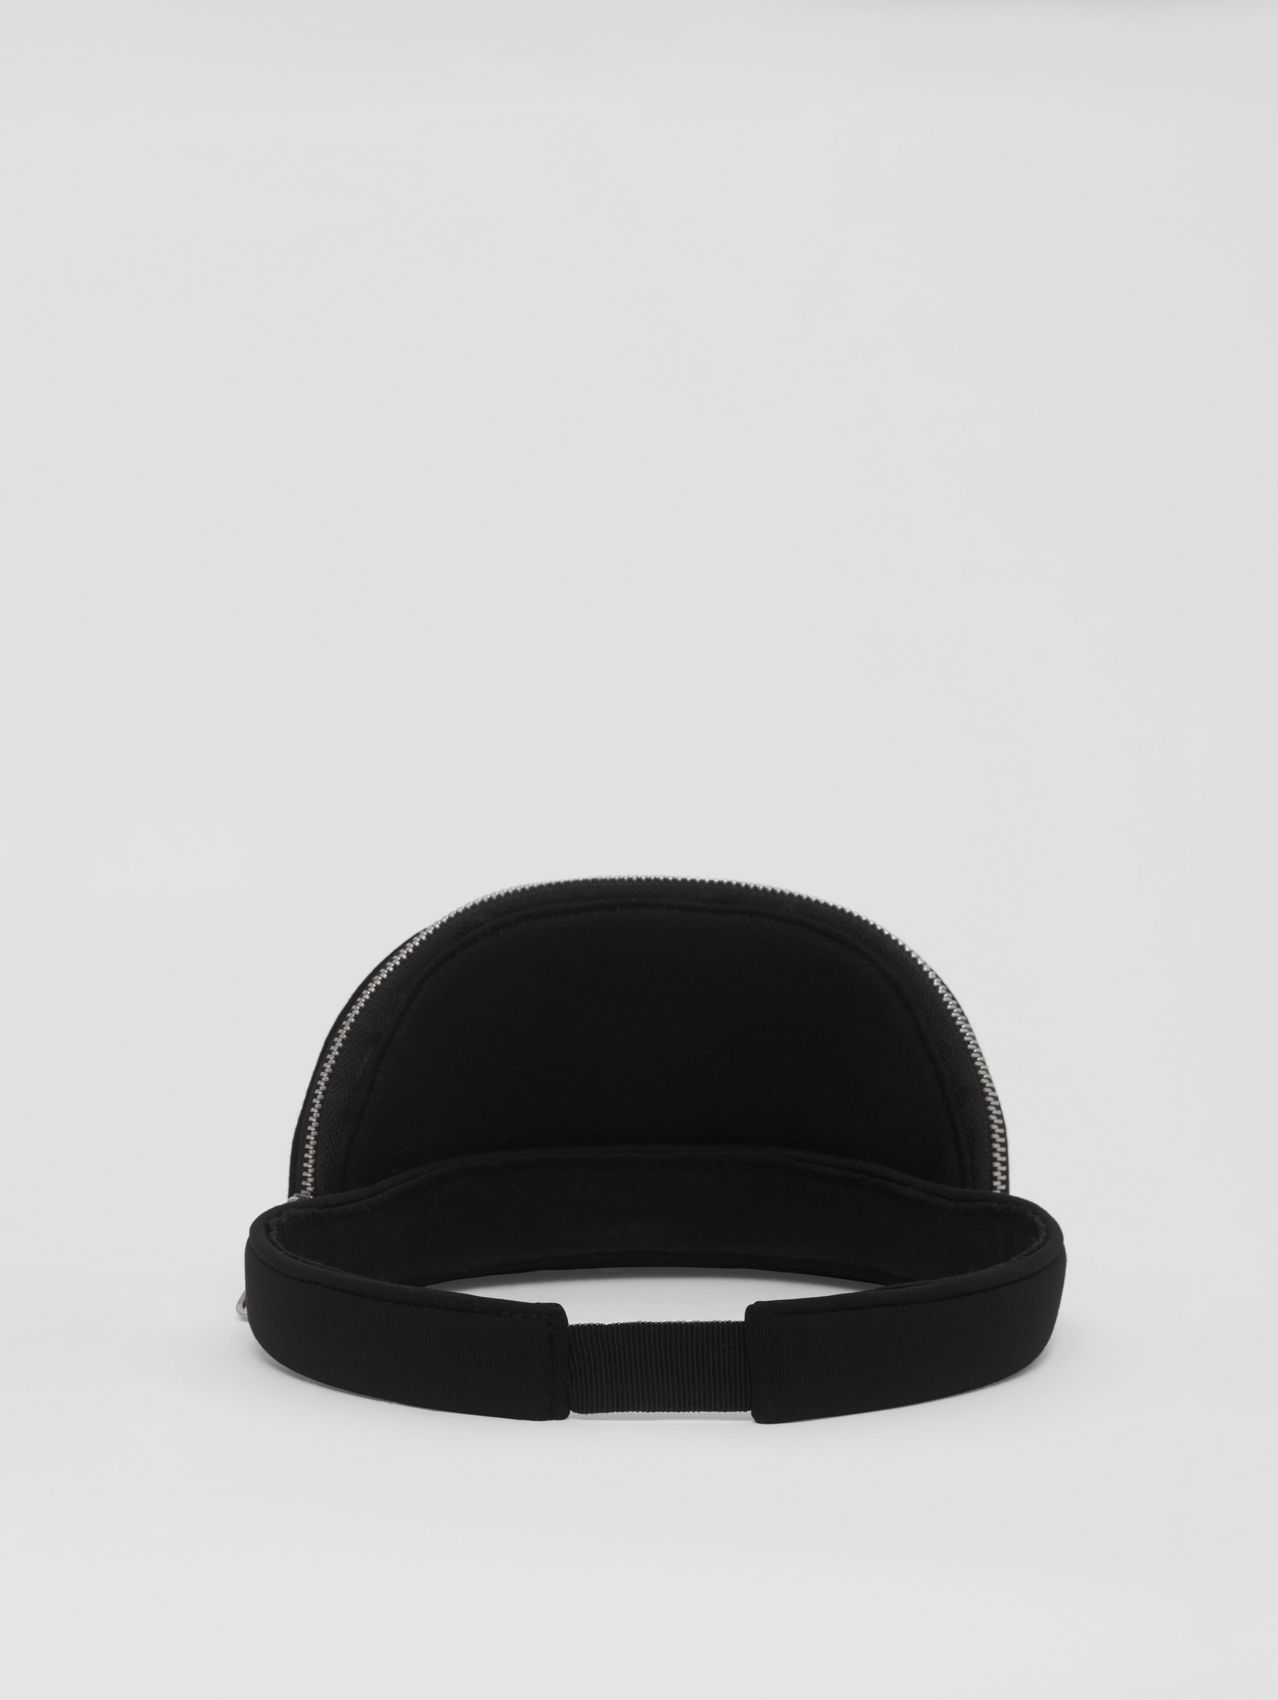 Neoprene Visor with Detachable Zip Pocket in Black